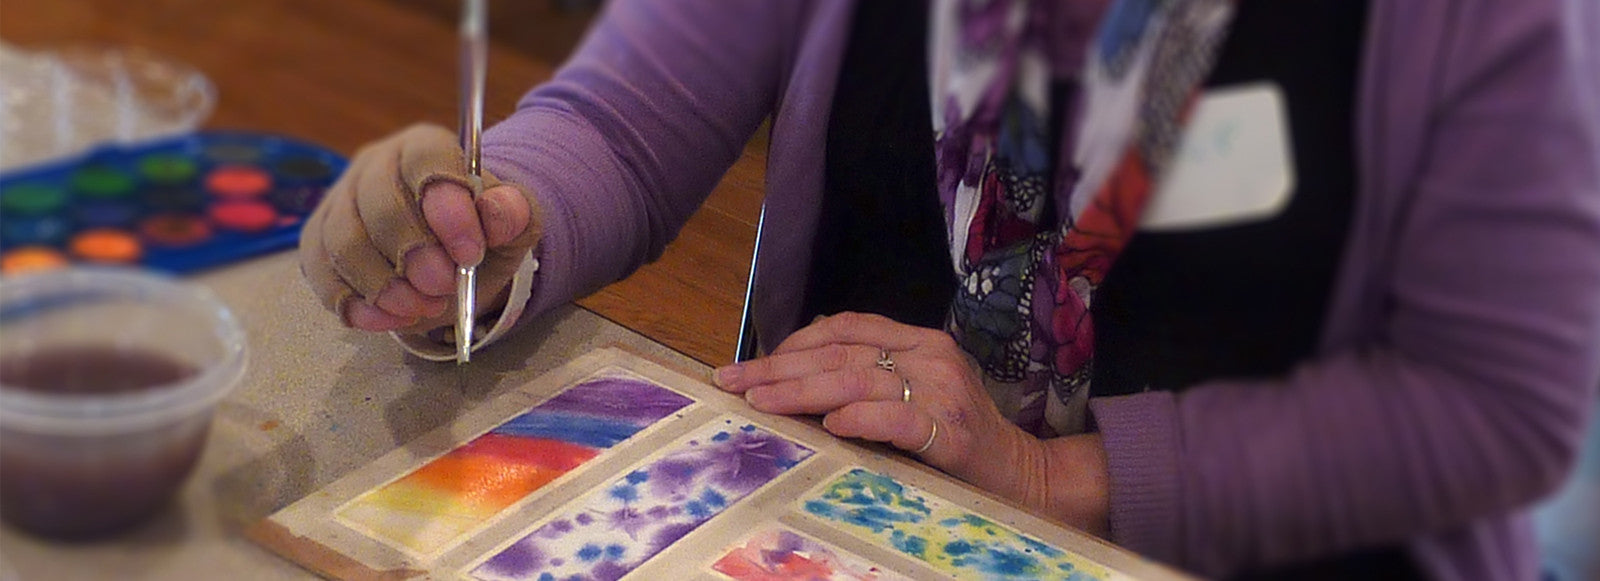 Helping people cope with cancer through self-expression and creativity...